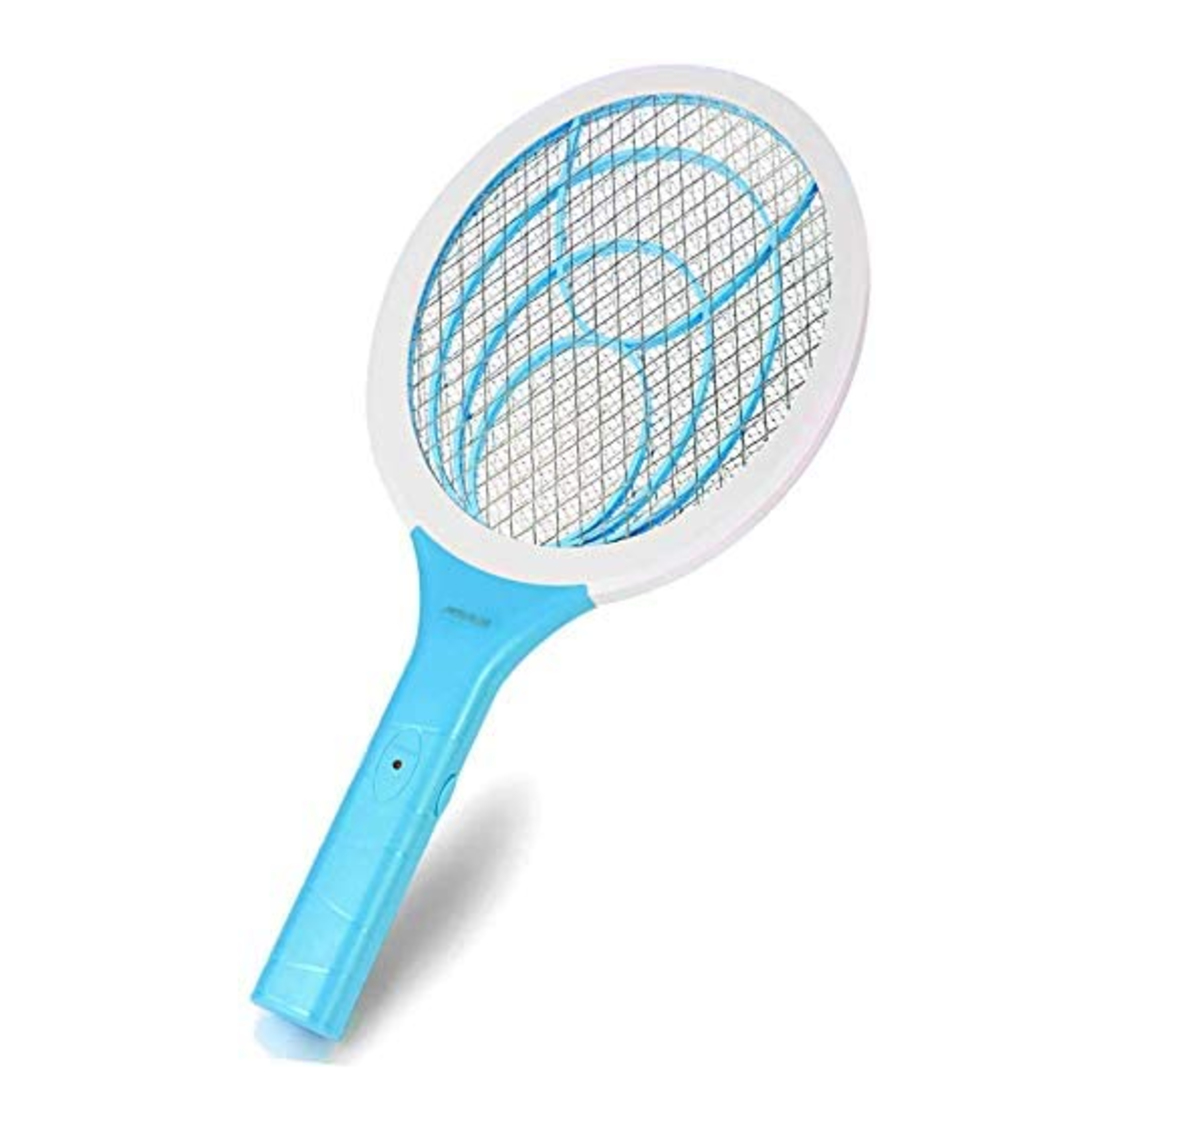 The electronic flyawatter is also a great yellowjacket solution